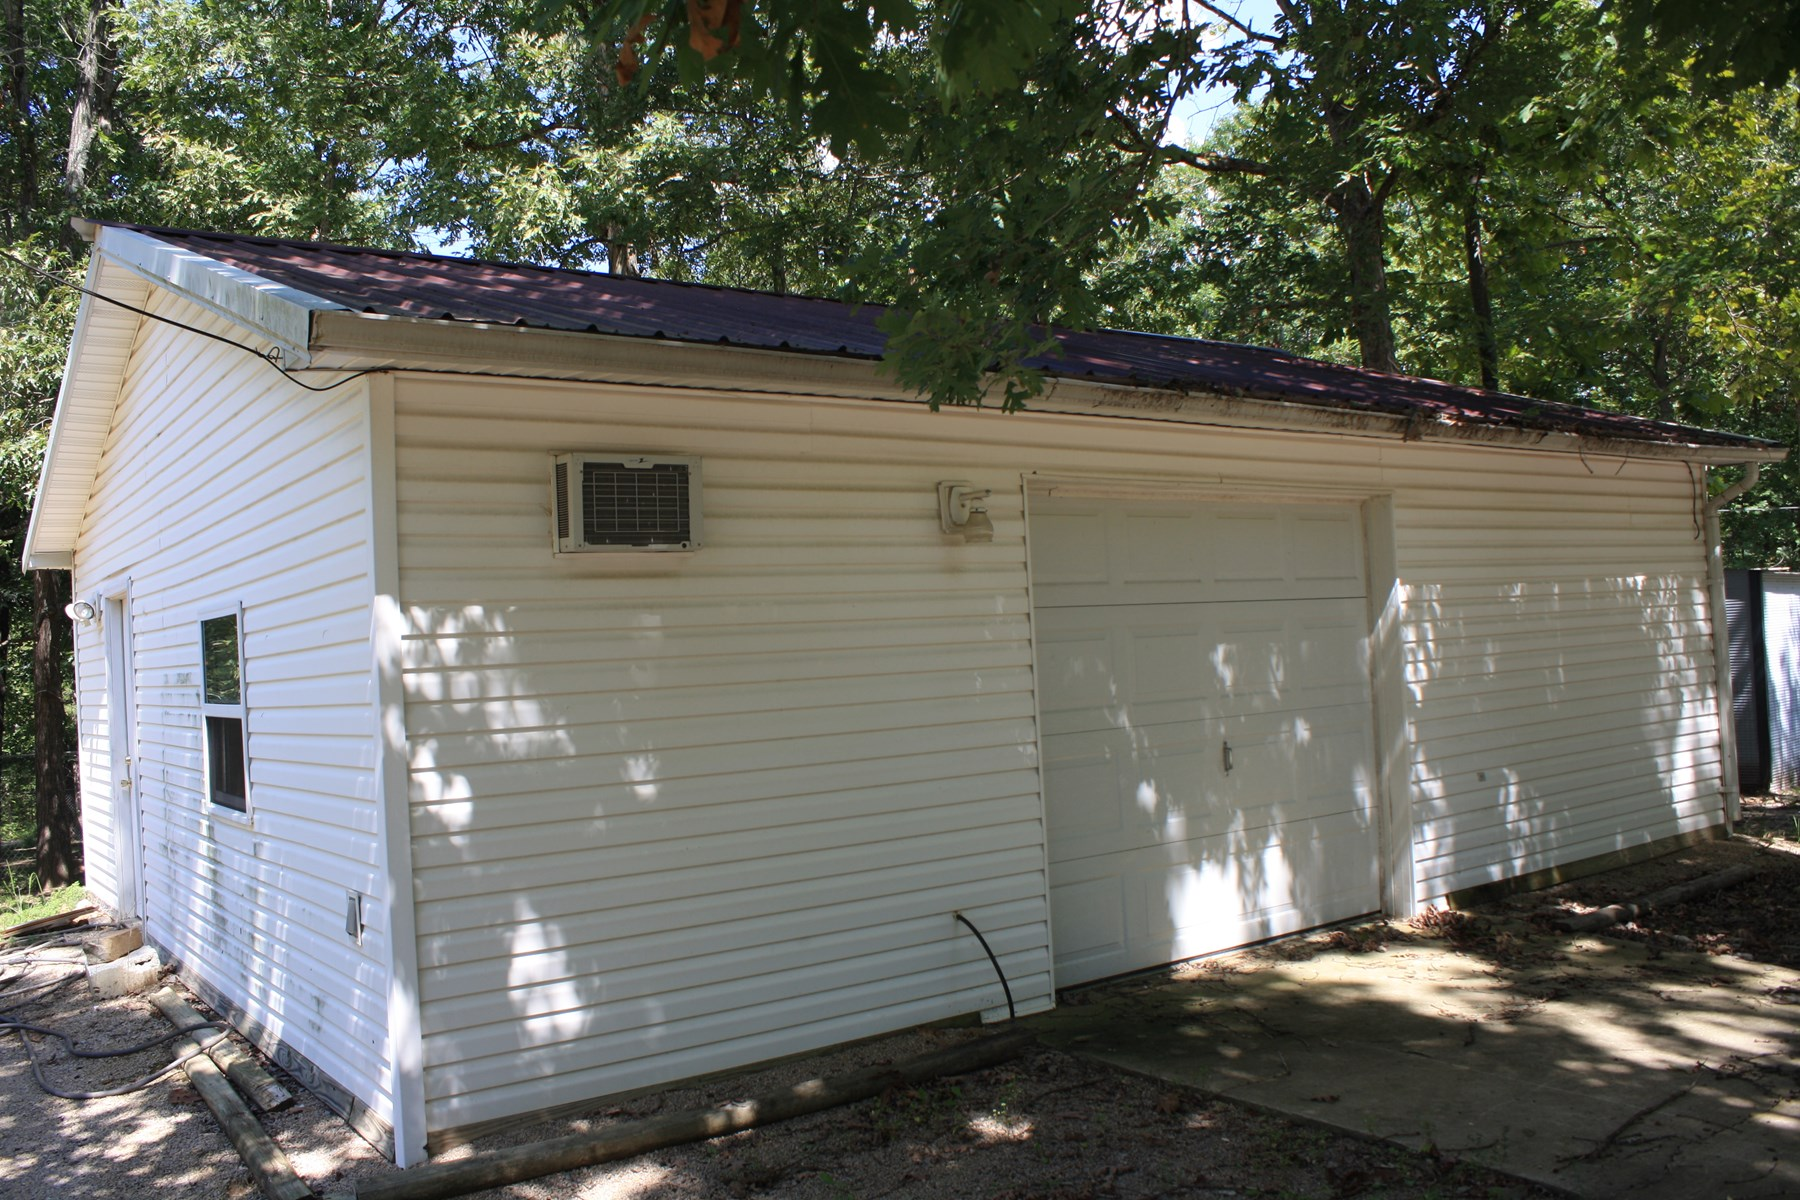 Search All Area Piedmont Missouri Real Estate Listings Power For A Detached Garage Shed Greenhouse Or Workshop Part 1 35000 Active